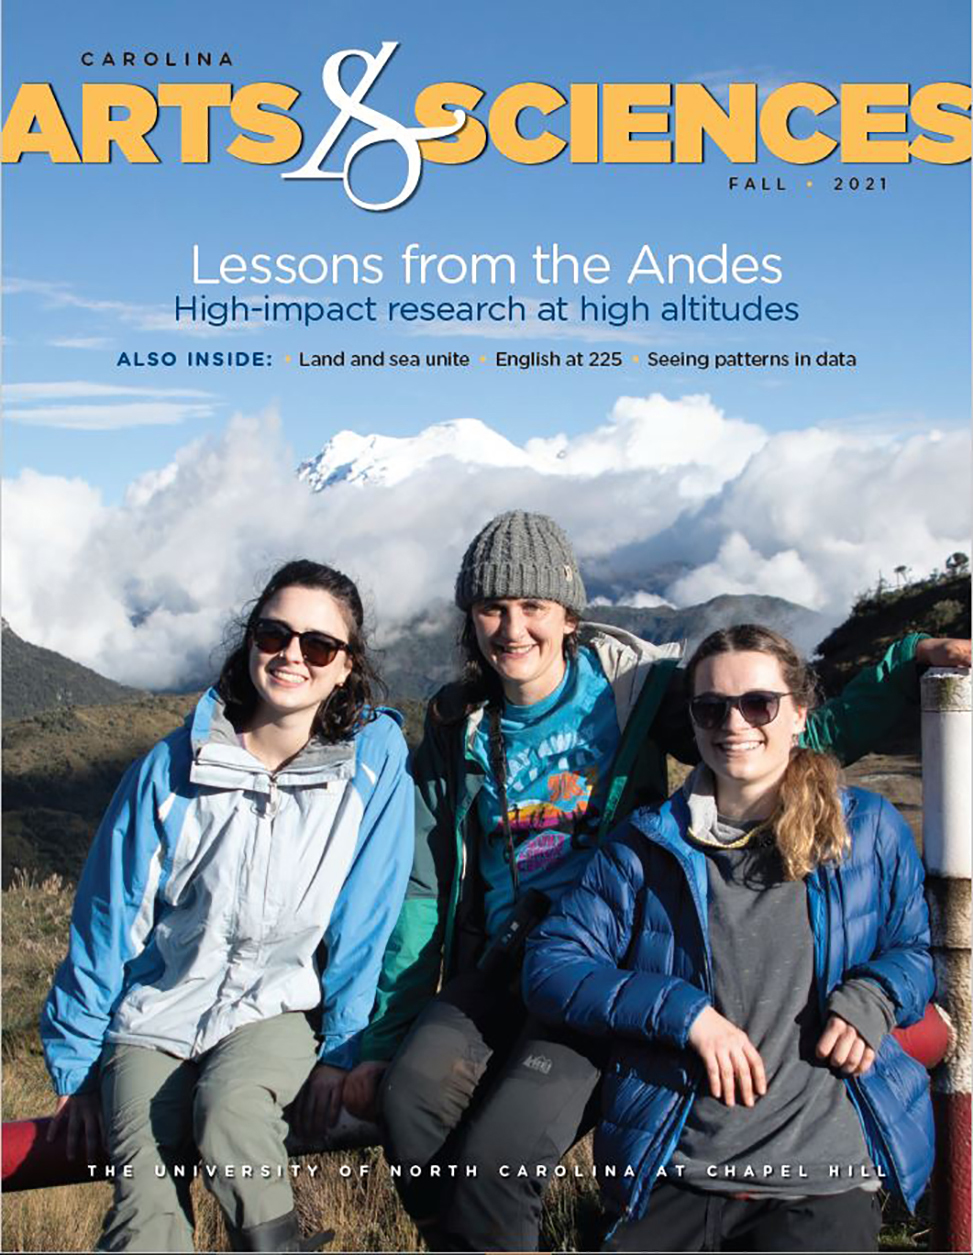 Cover of the Carolina Arts & Sciences magazine fall 2021 features three young women in Ecuador standing in front of a volcano. The text on the cover reads: Lessons from the Andes: High-impact research at high altitudes. ALSO INSIDE: Land and sea unite, English at 225, Seeing patterns in data.